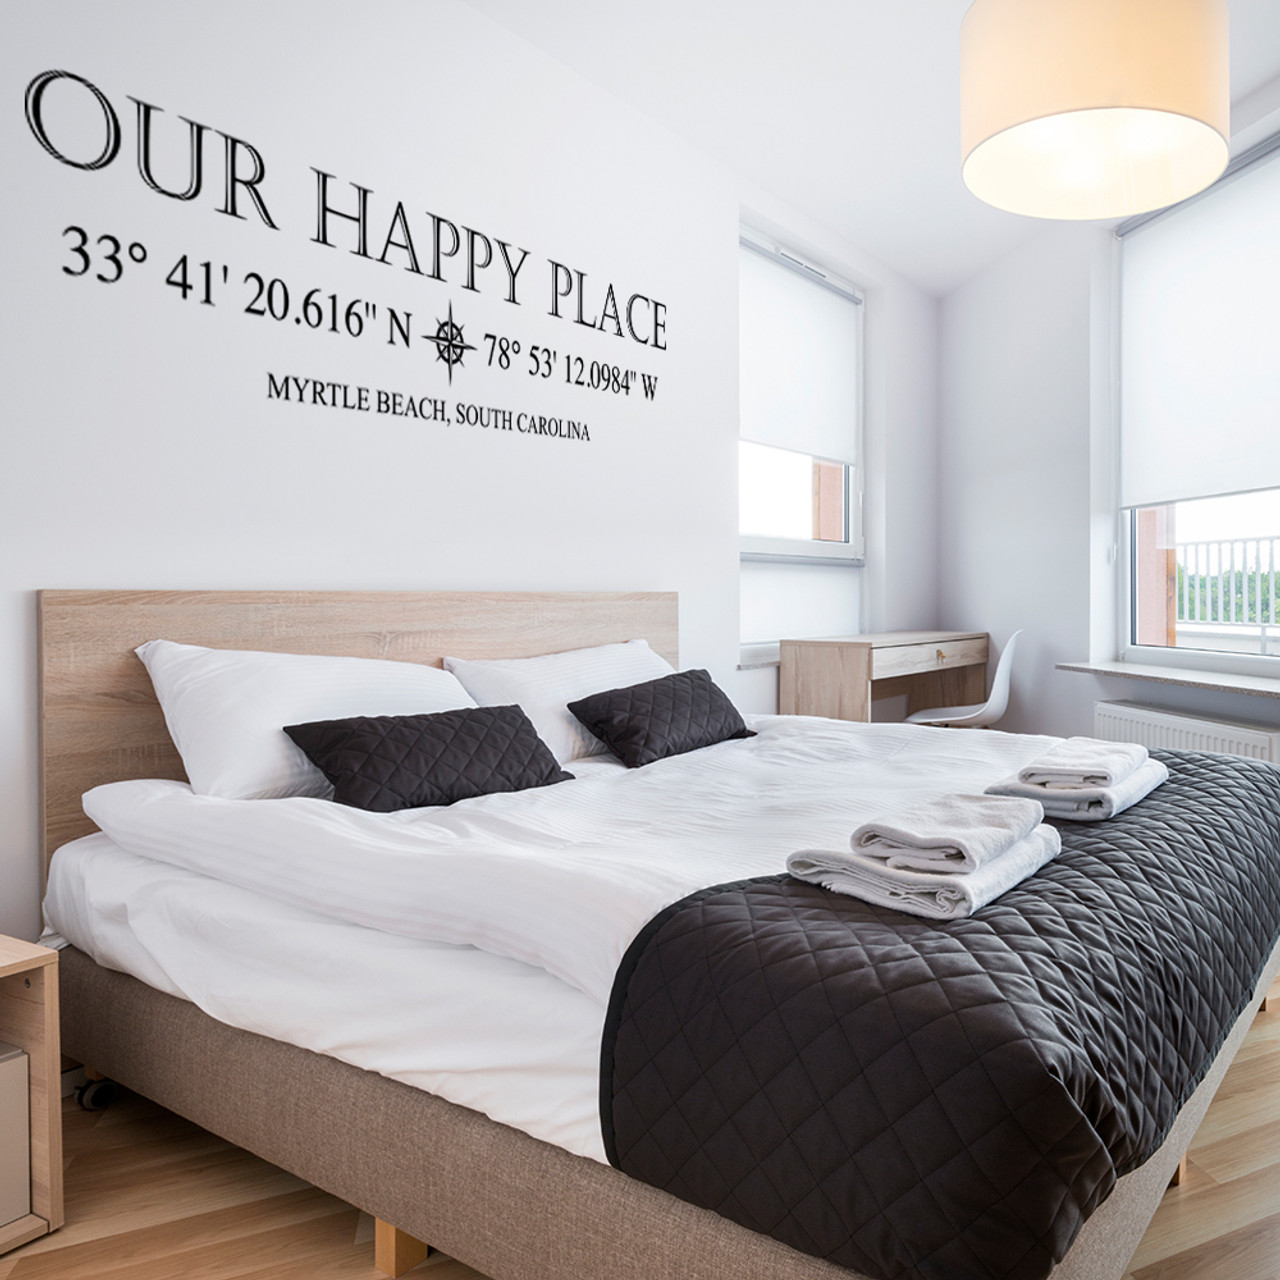 Our Happy Place vinyl wall decal with customizable coordinates, town and state name in black